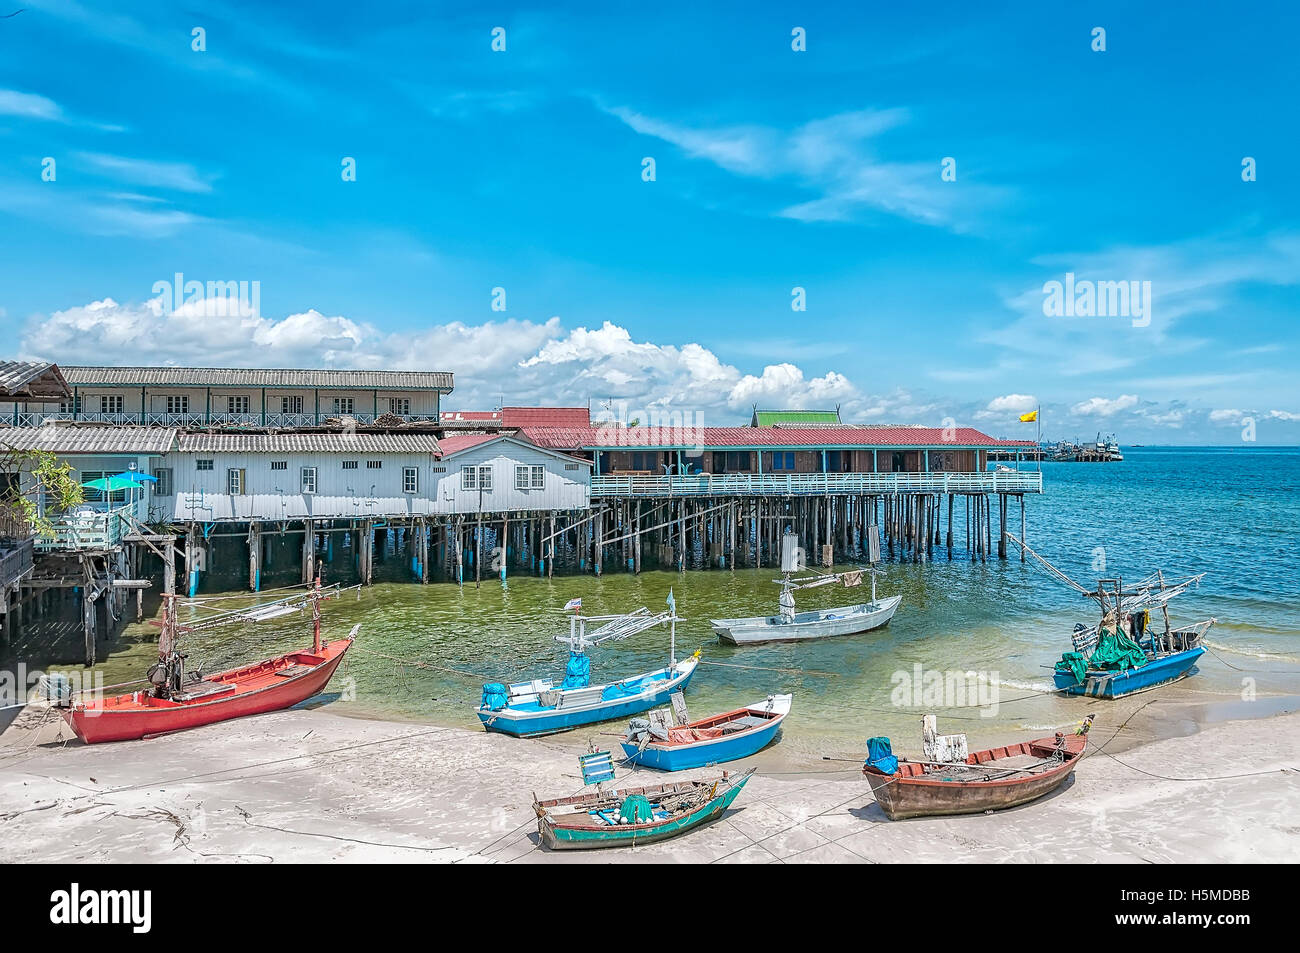 A cluster of fishing boats berthed at hua hin harbor in Thailand. - Stock Image